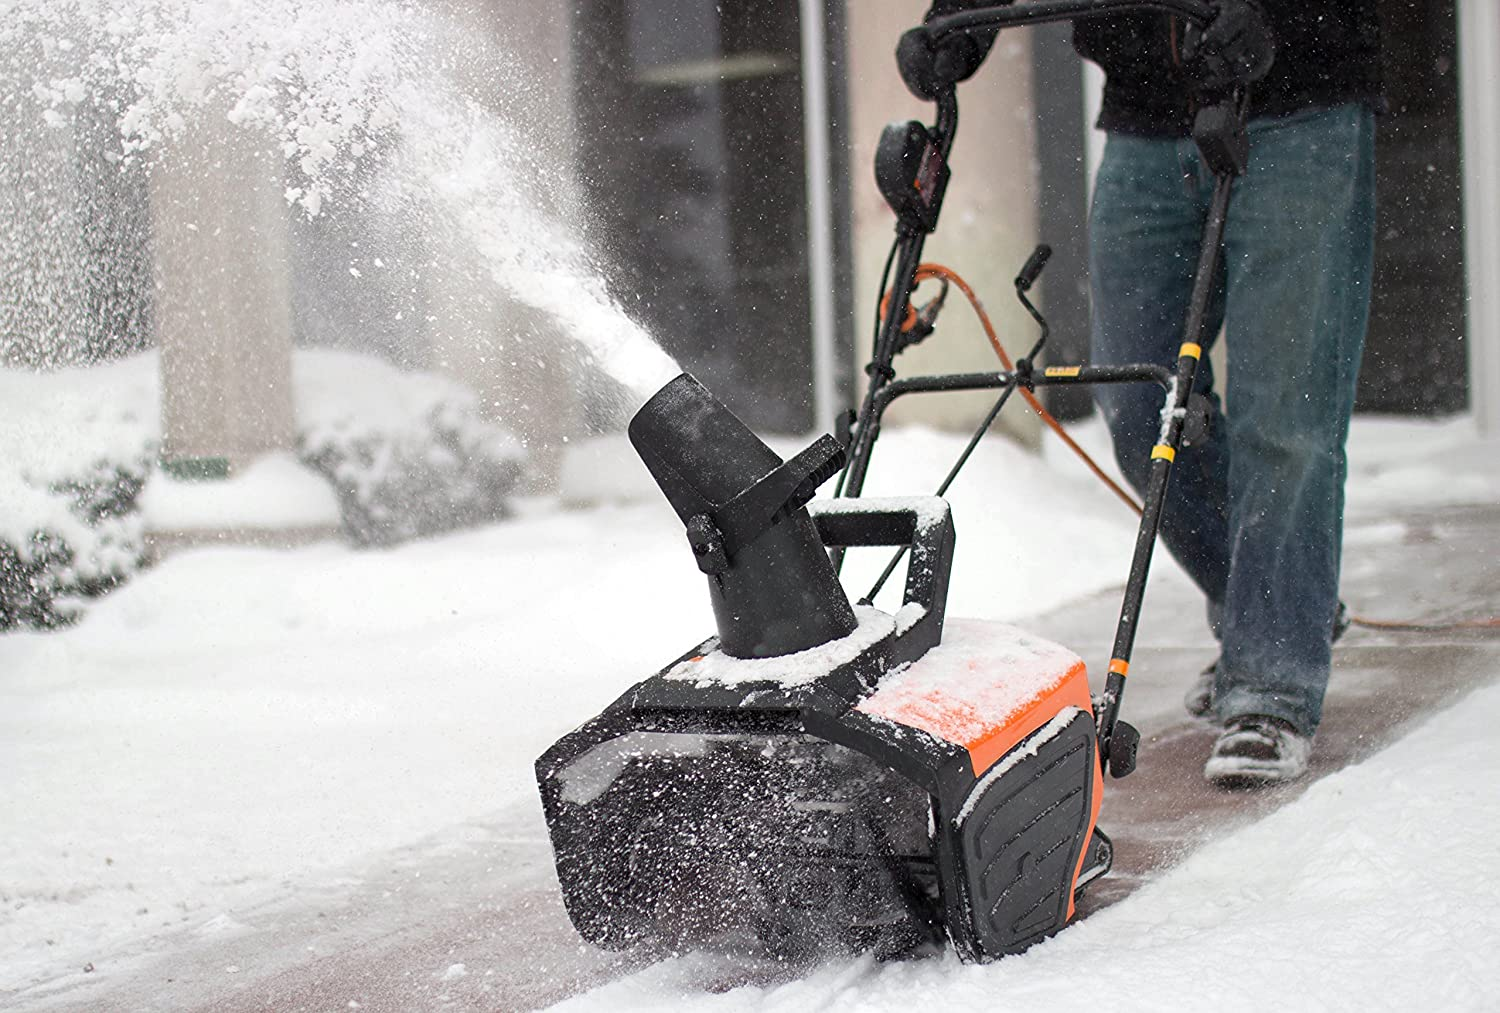 WEN Snow Blaster know for mobility